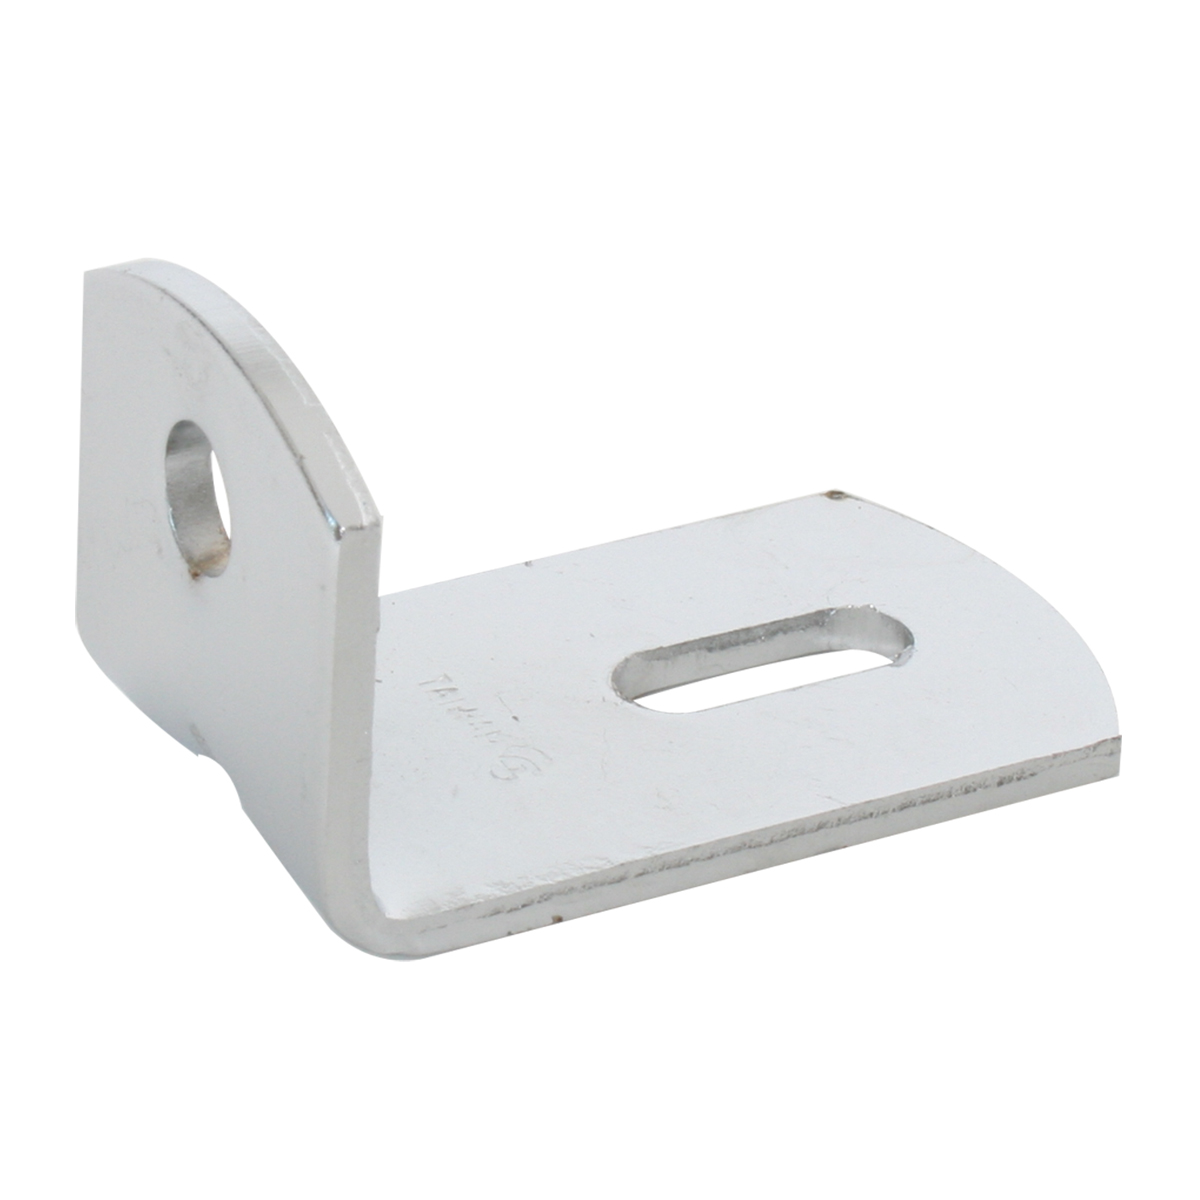 "L-Bracket (2"" x 1"" x 1.25"") for Mirror"